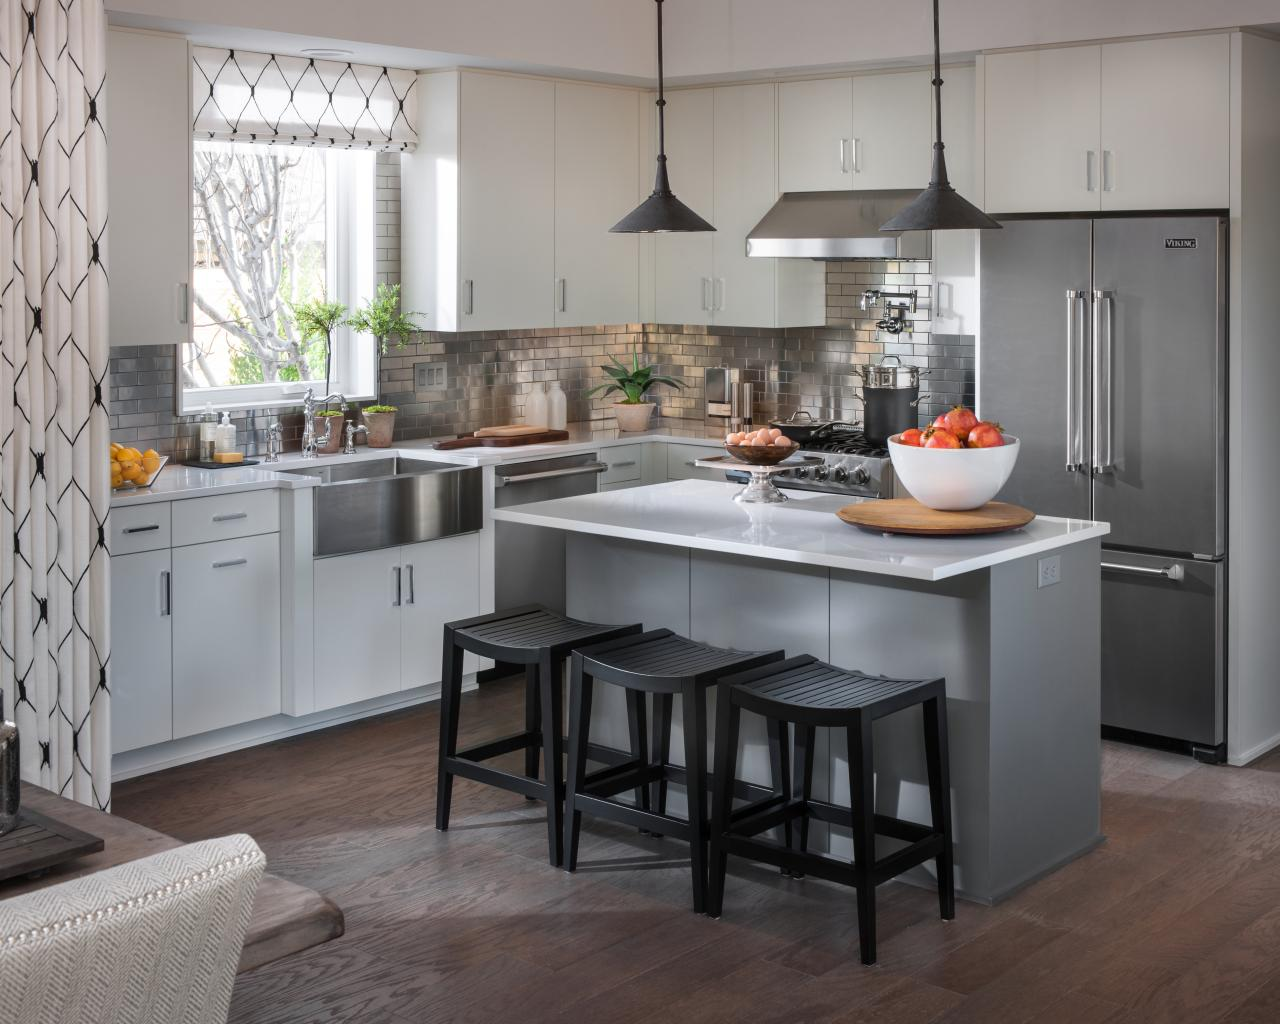 Pictures Of The Hgtv Smart Home 2015 Kitchen Hgtv Smart Home Sweepstakes Hgtv